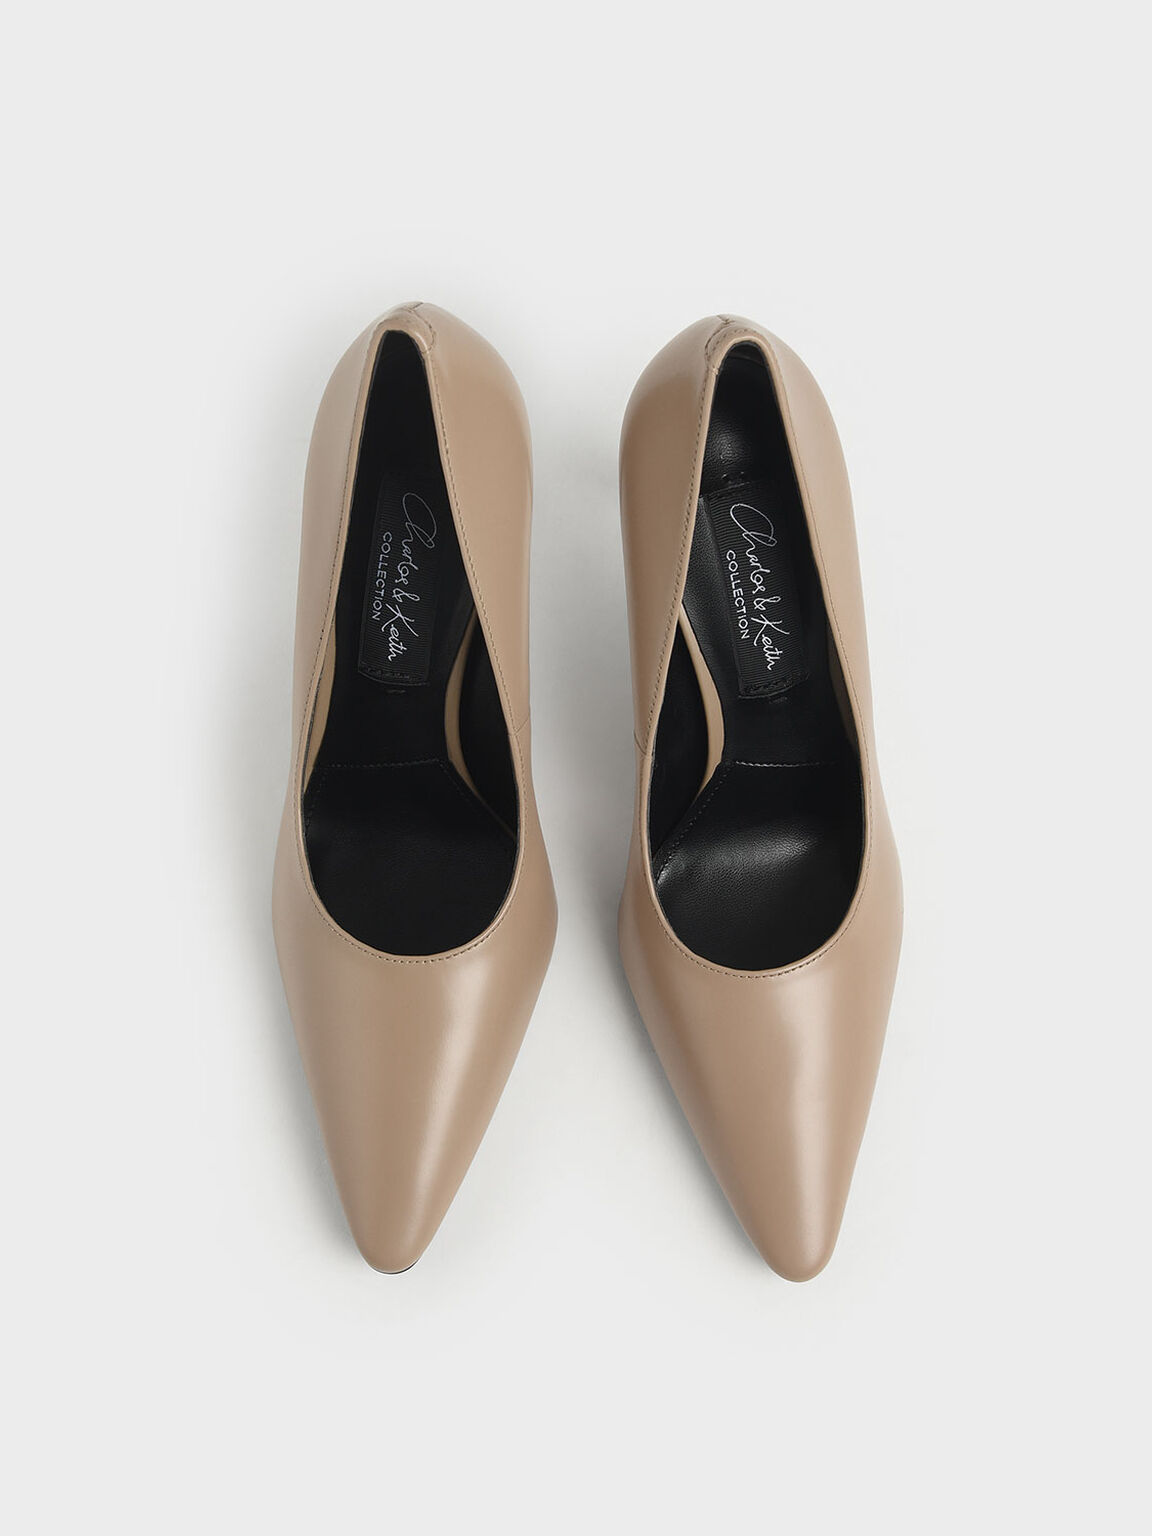 Leather Stiletto Heel Pumps, Taupe, hi-res